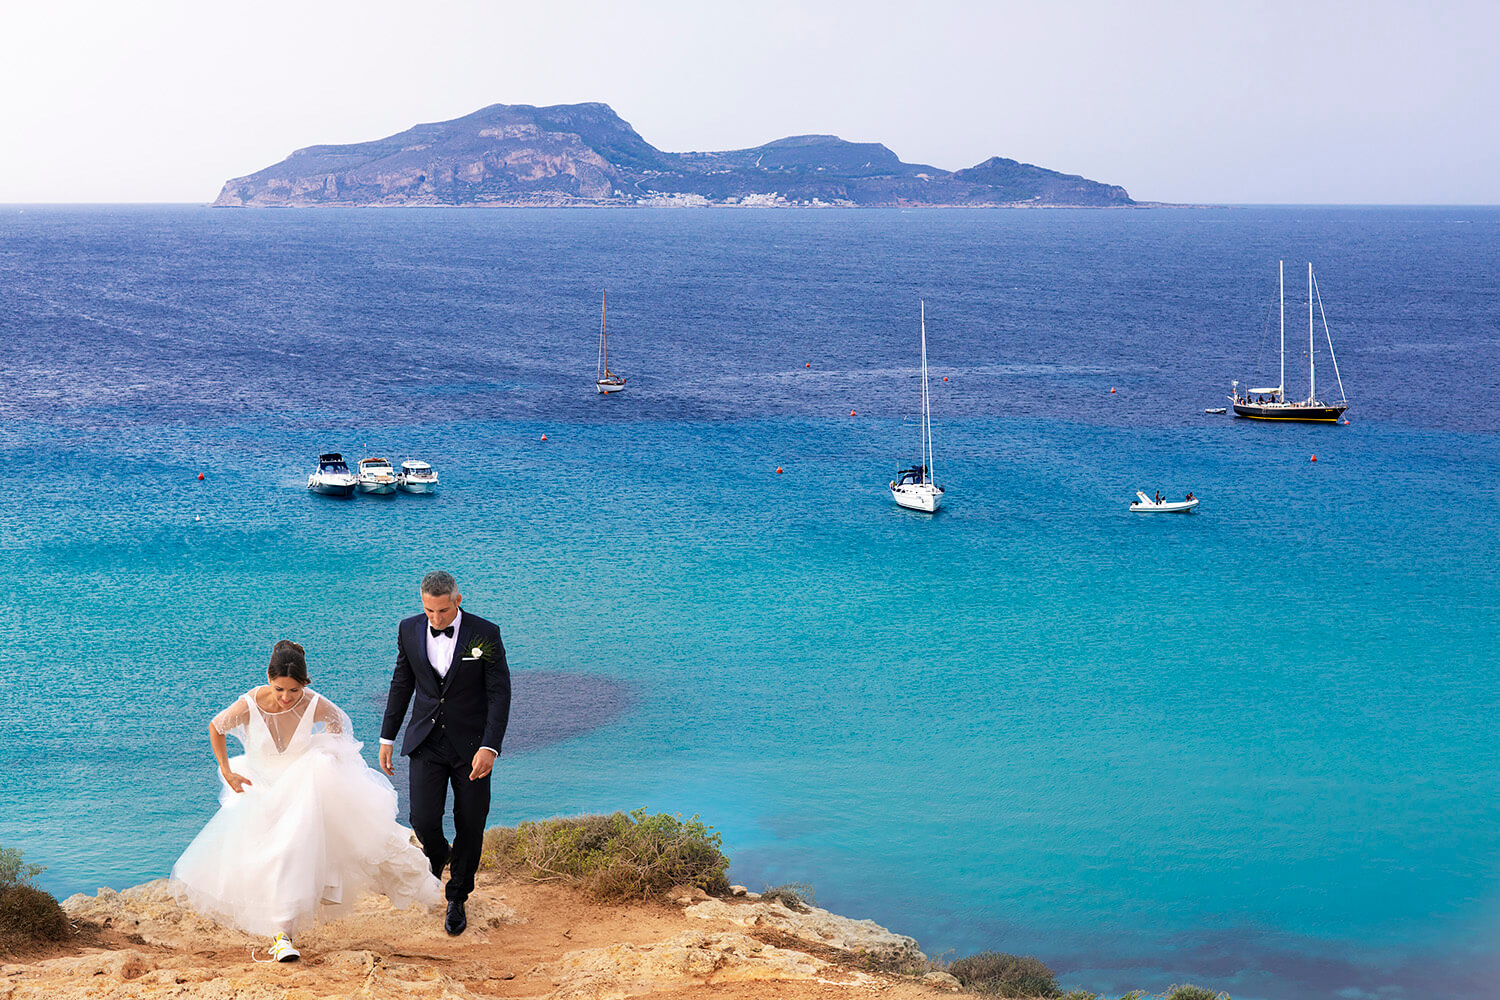 Wedding Reportage Spouses at Cala Rossa in Favignana, Shooting at the Egadi Islands by Nino Lombardo